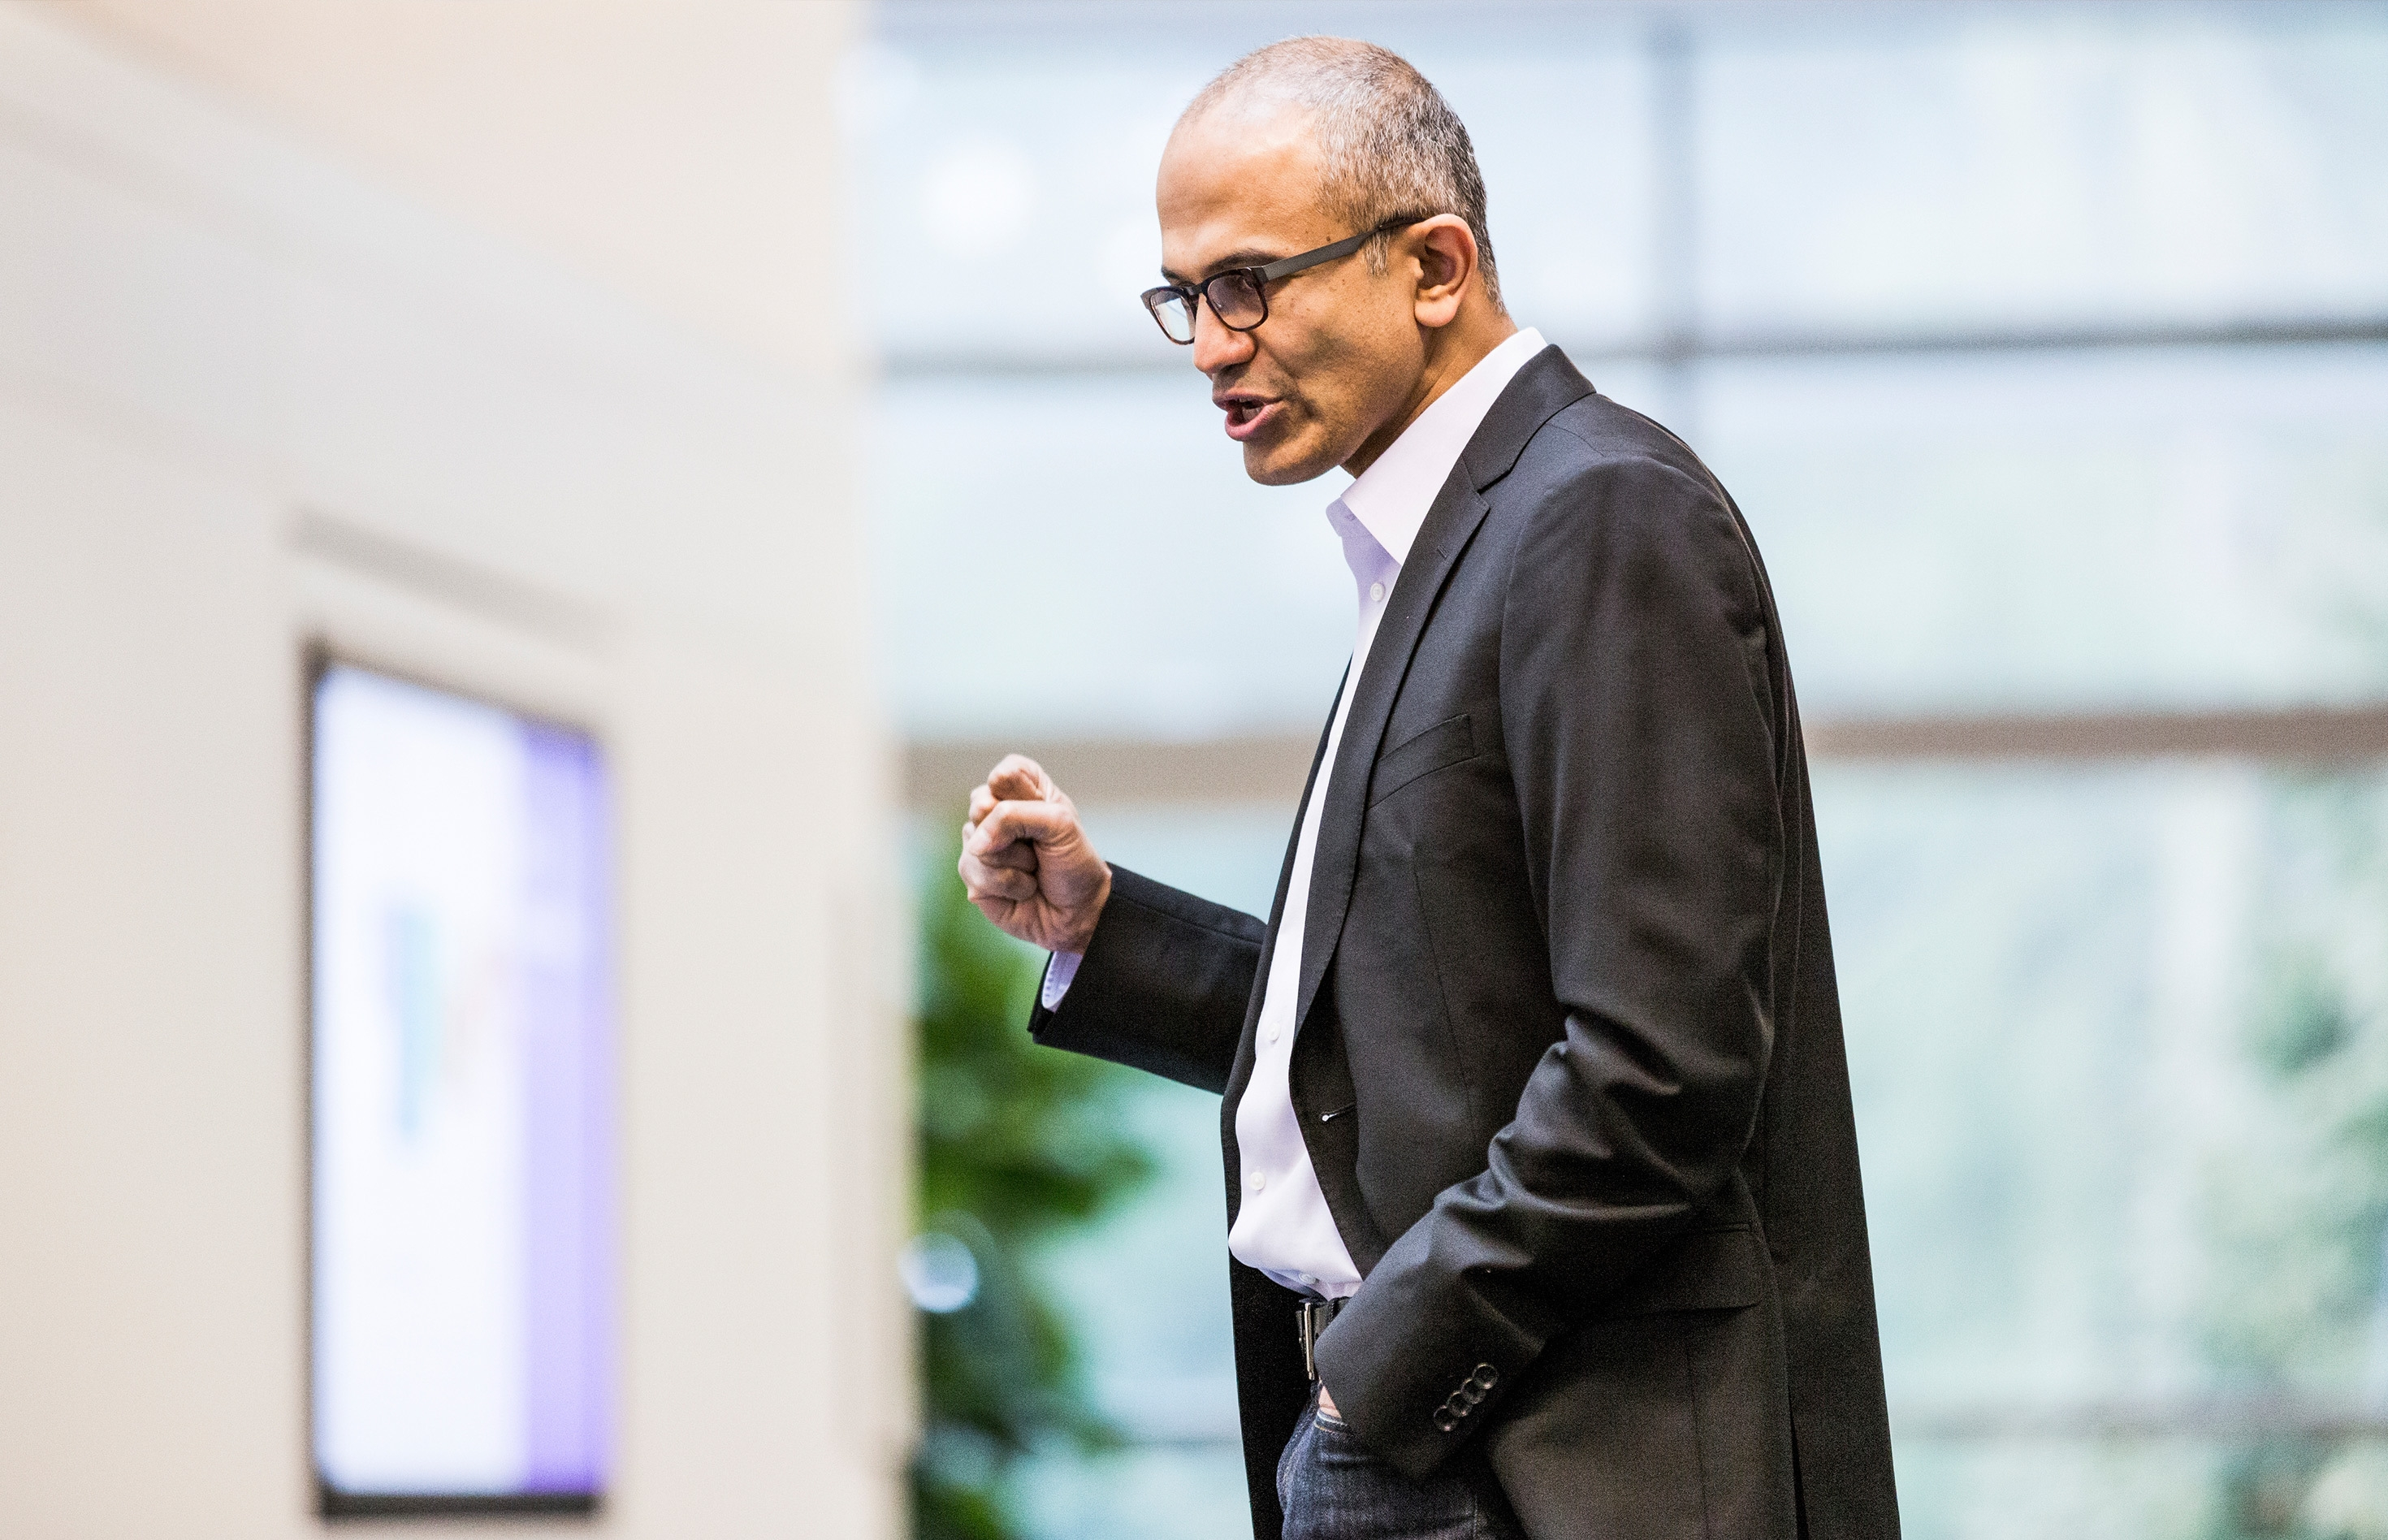 Today's announcement is the boldest move by CEO Satya Nadella since he took the reins from Steve Ballmer in February.